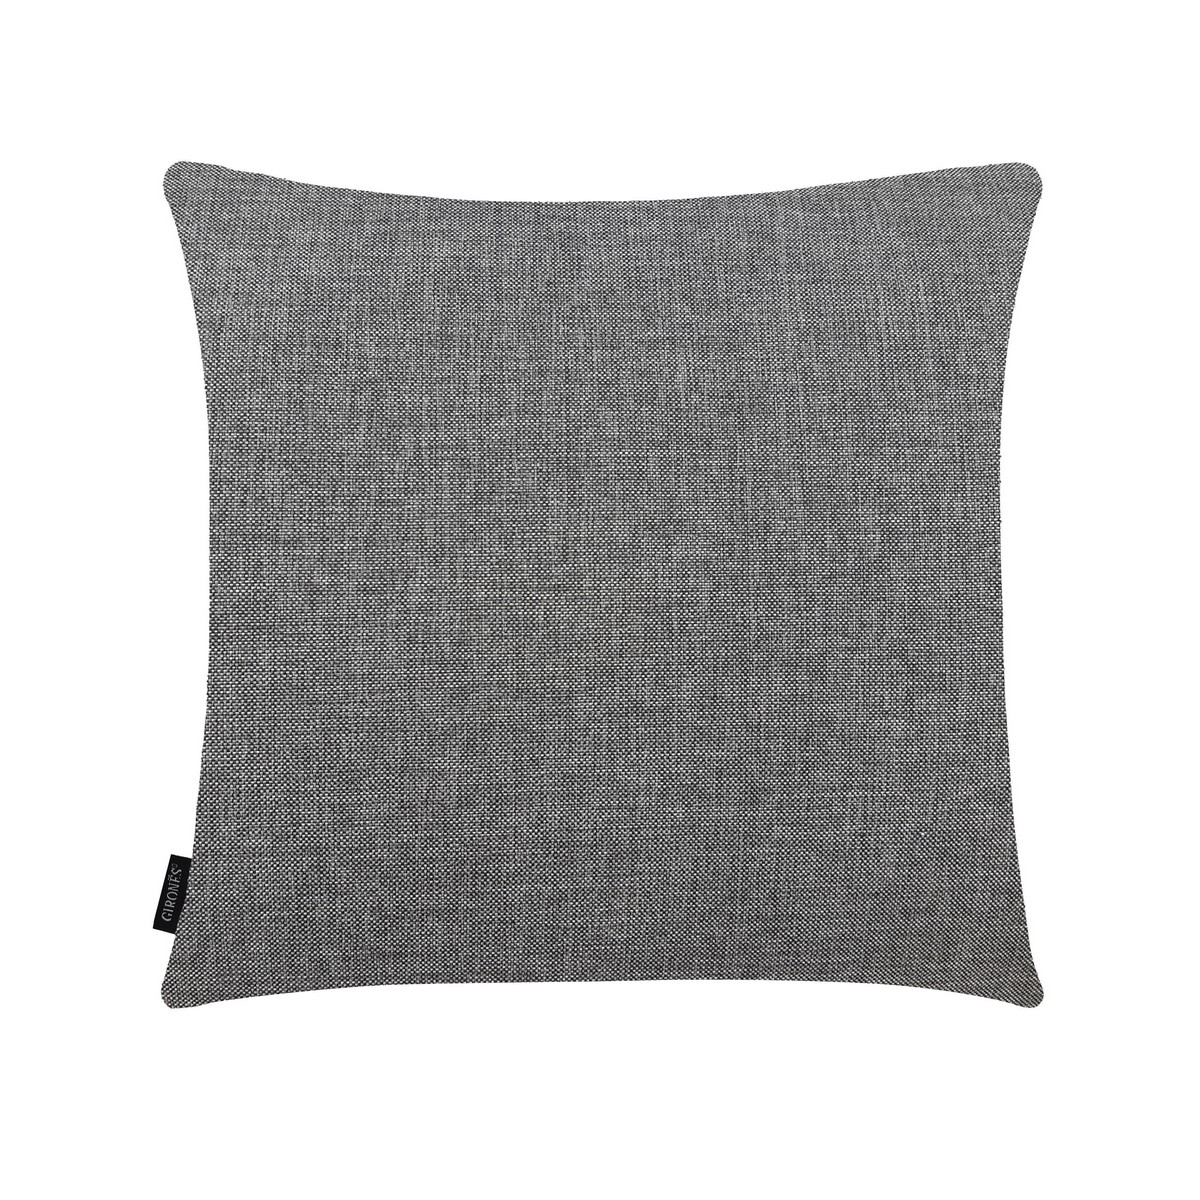 Hydra Waterproof Grey Outdoors Cushion Cover (3)